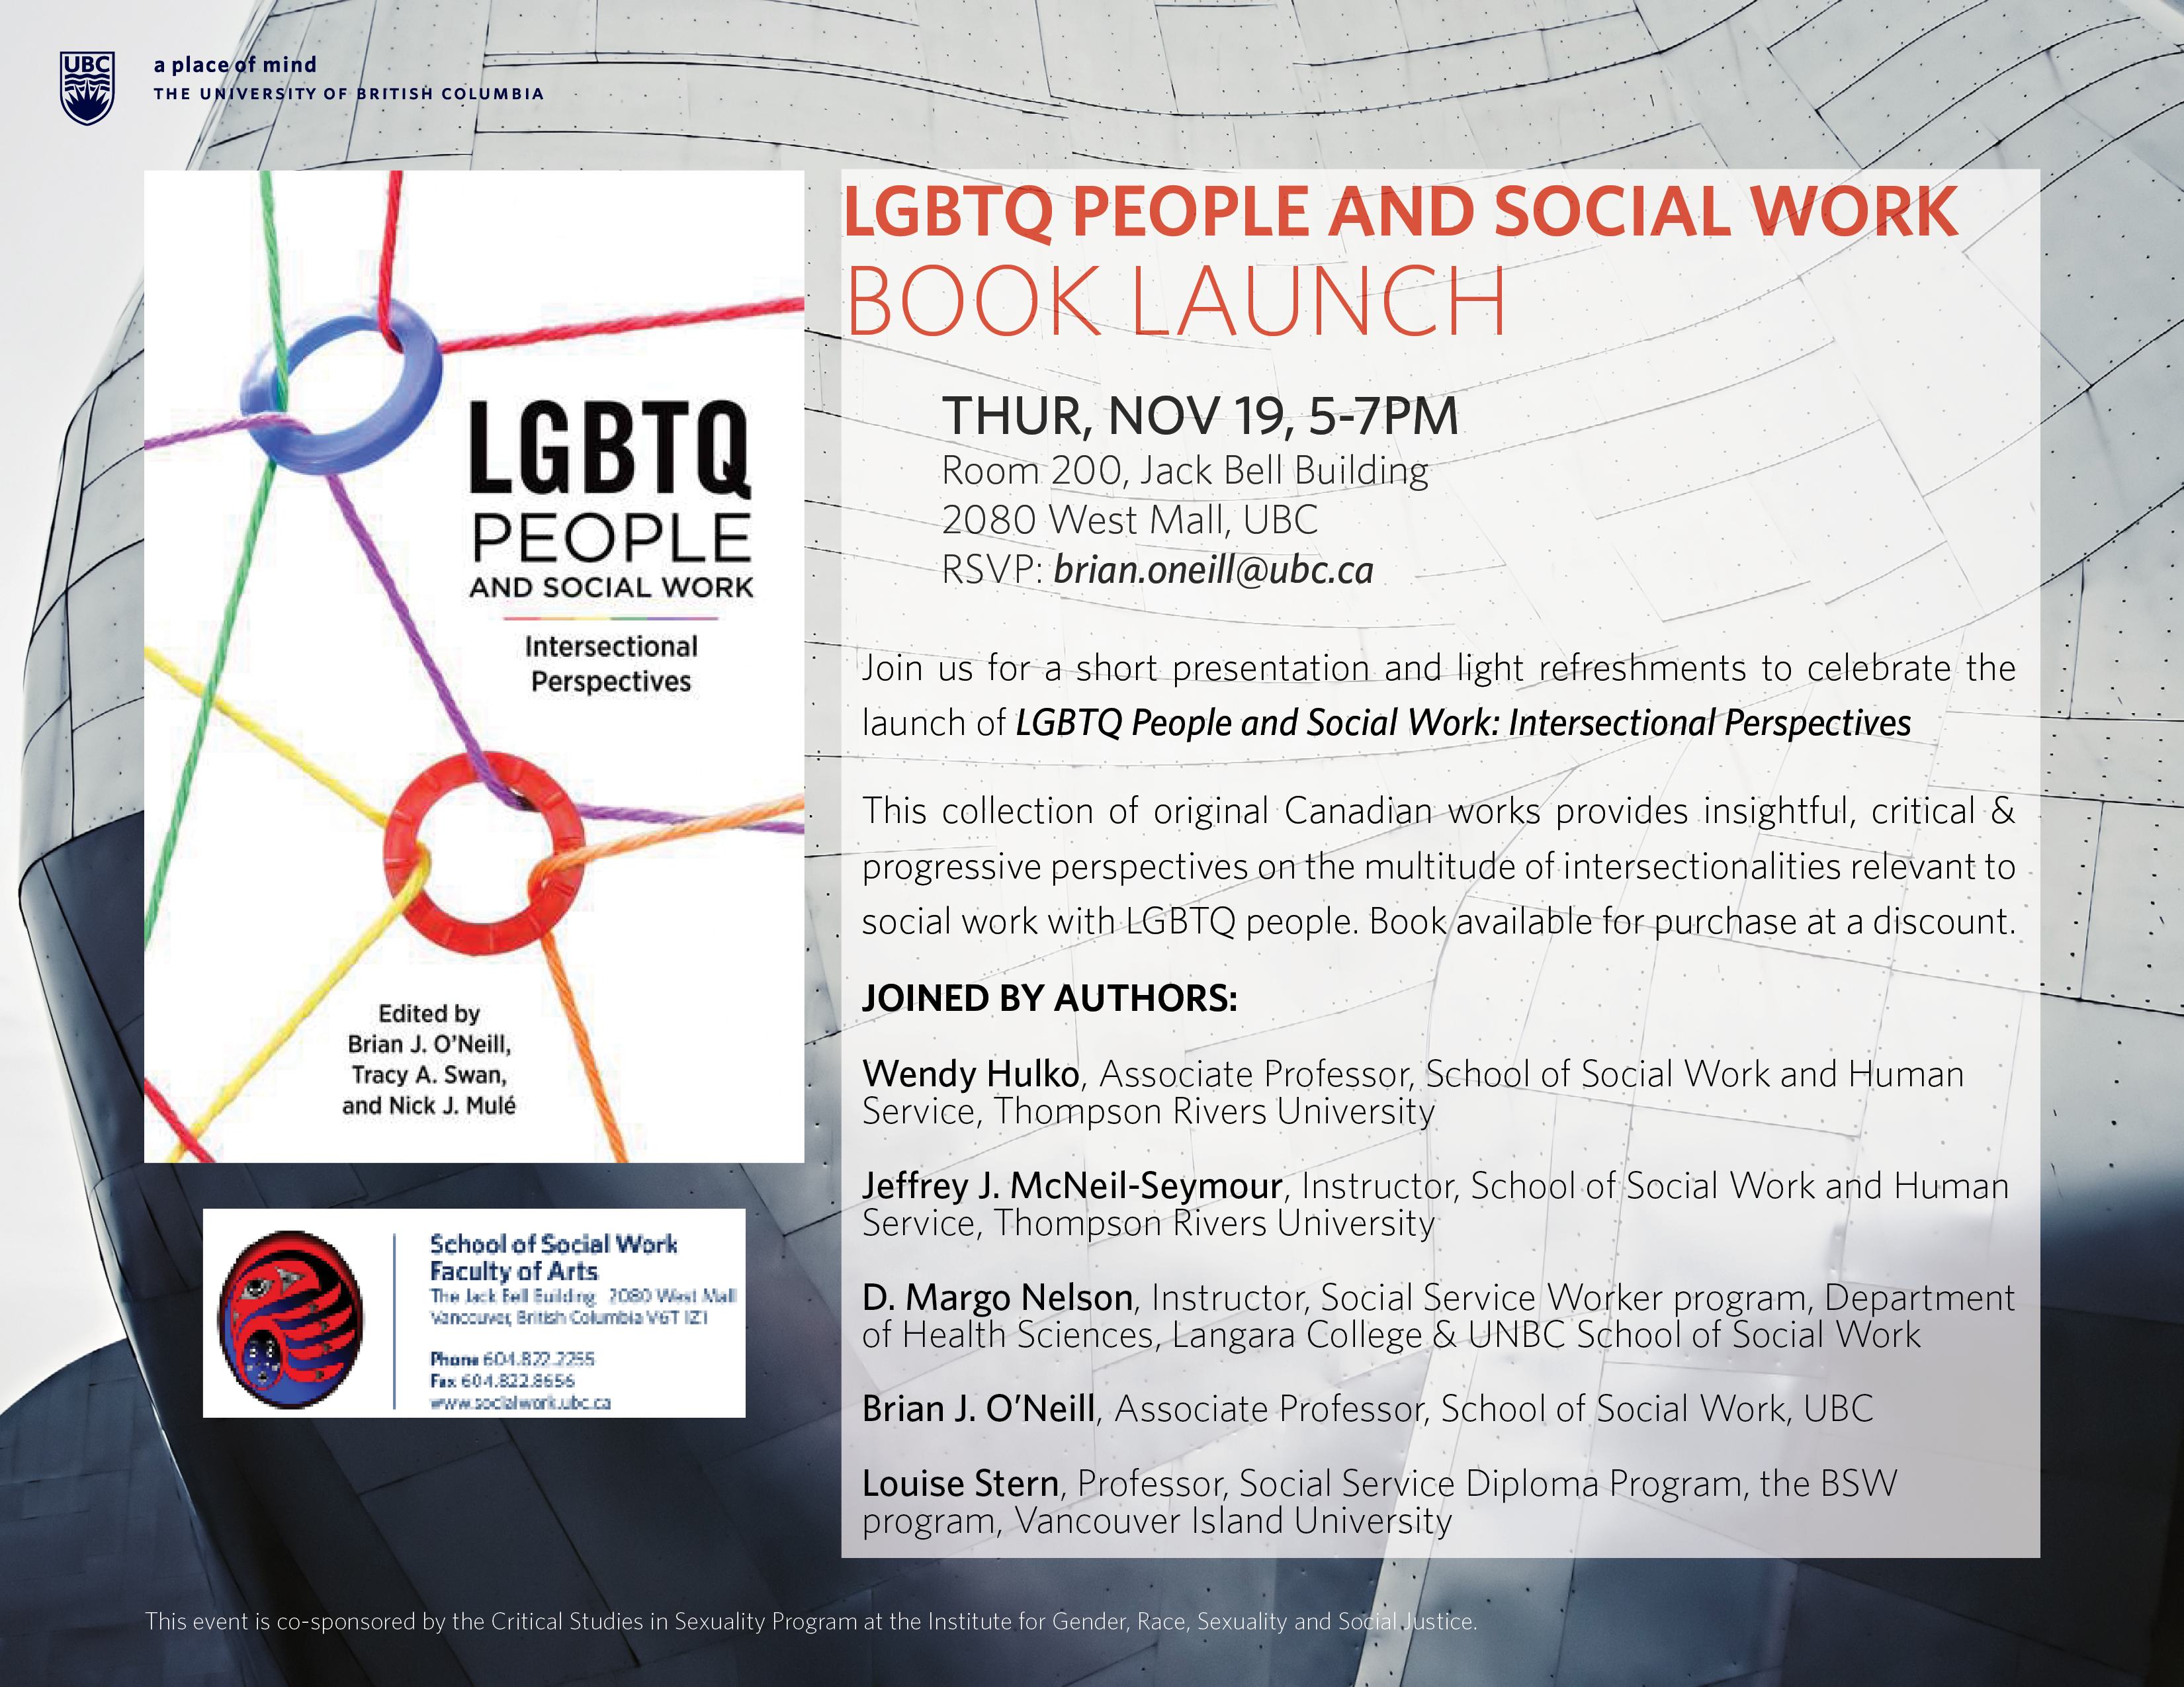 LGBTQ People and Social Work Book Launch